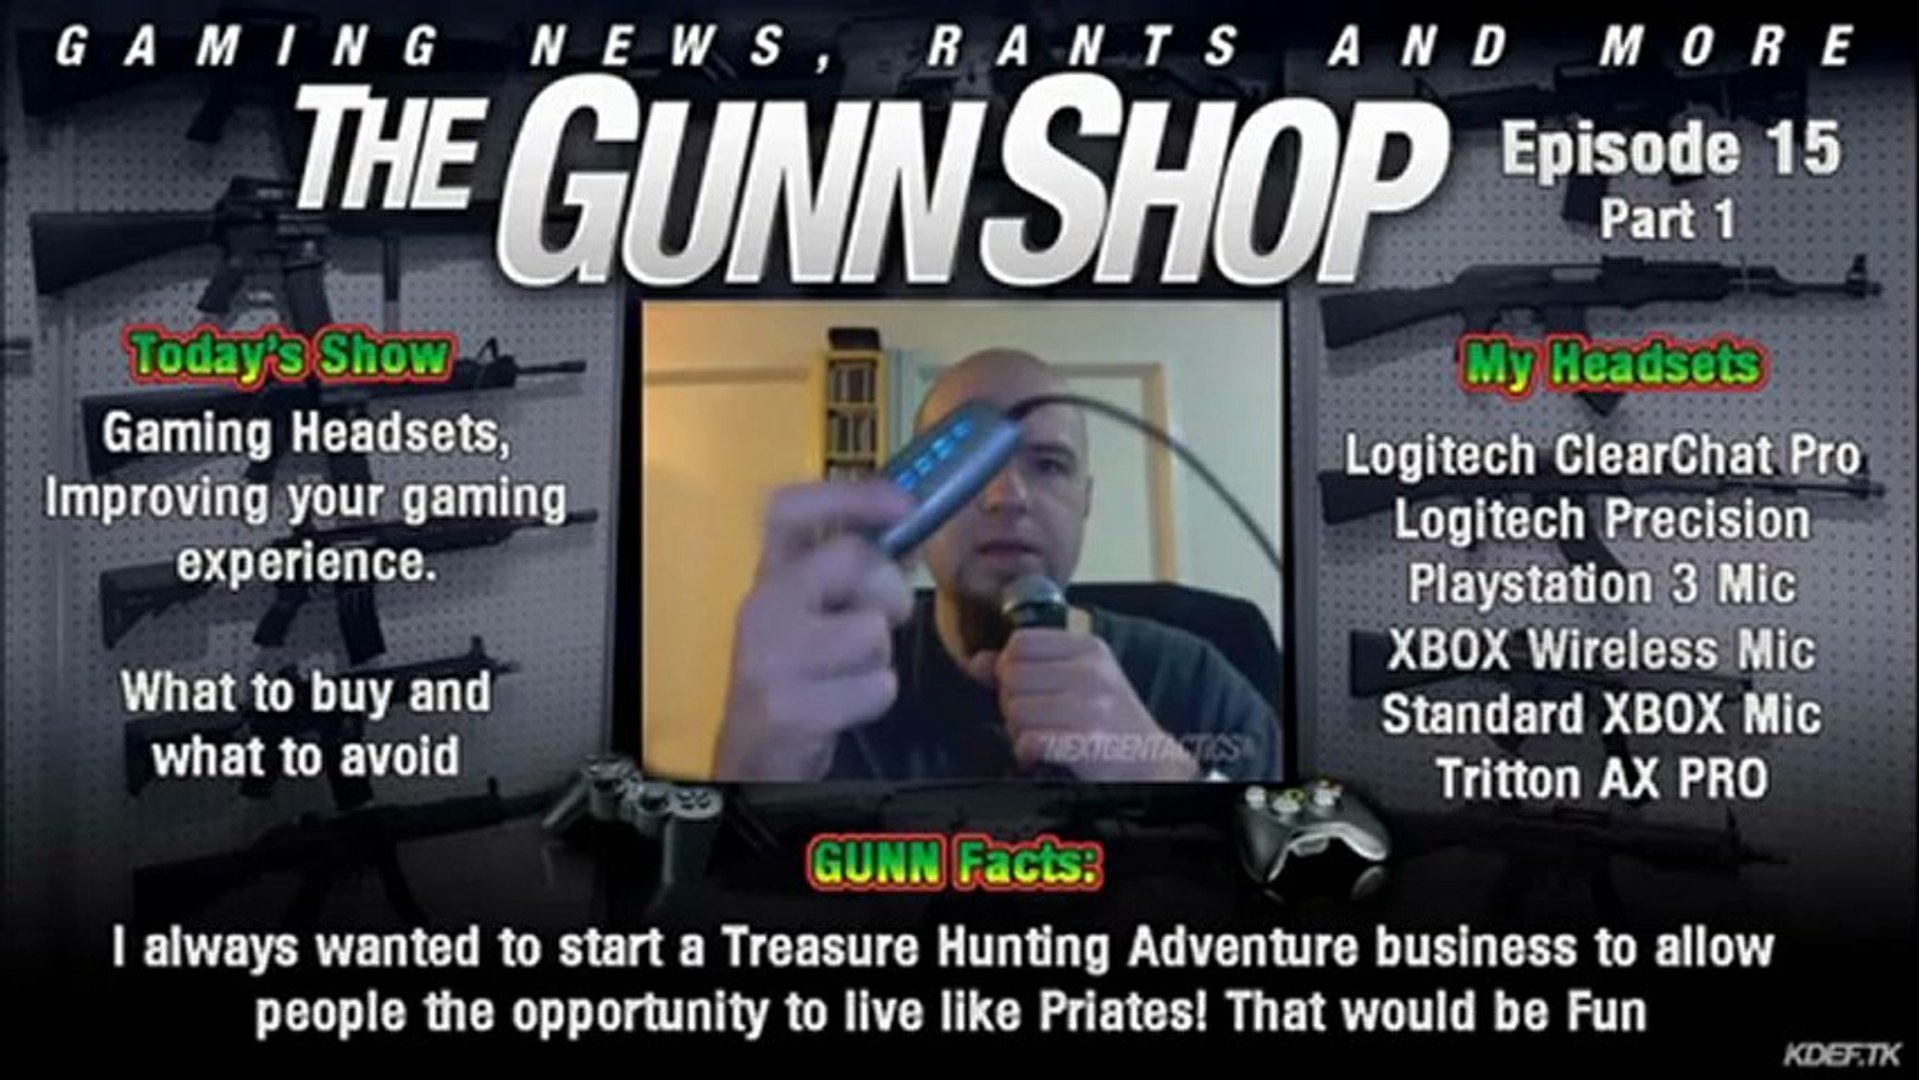 The GUNN Shop, Episode 15: Gaming Headsets, Improving your gaming experience, Part 1 of 2